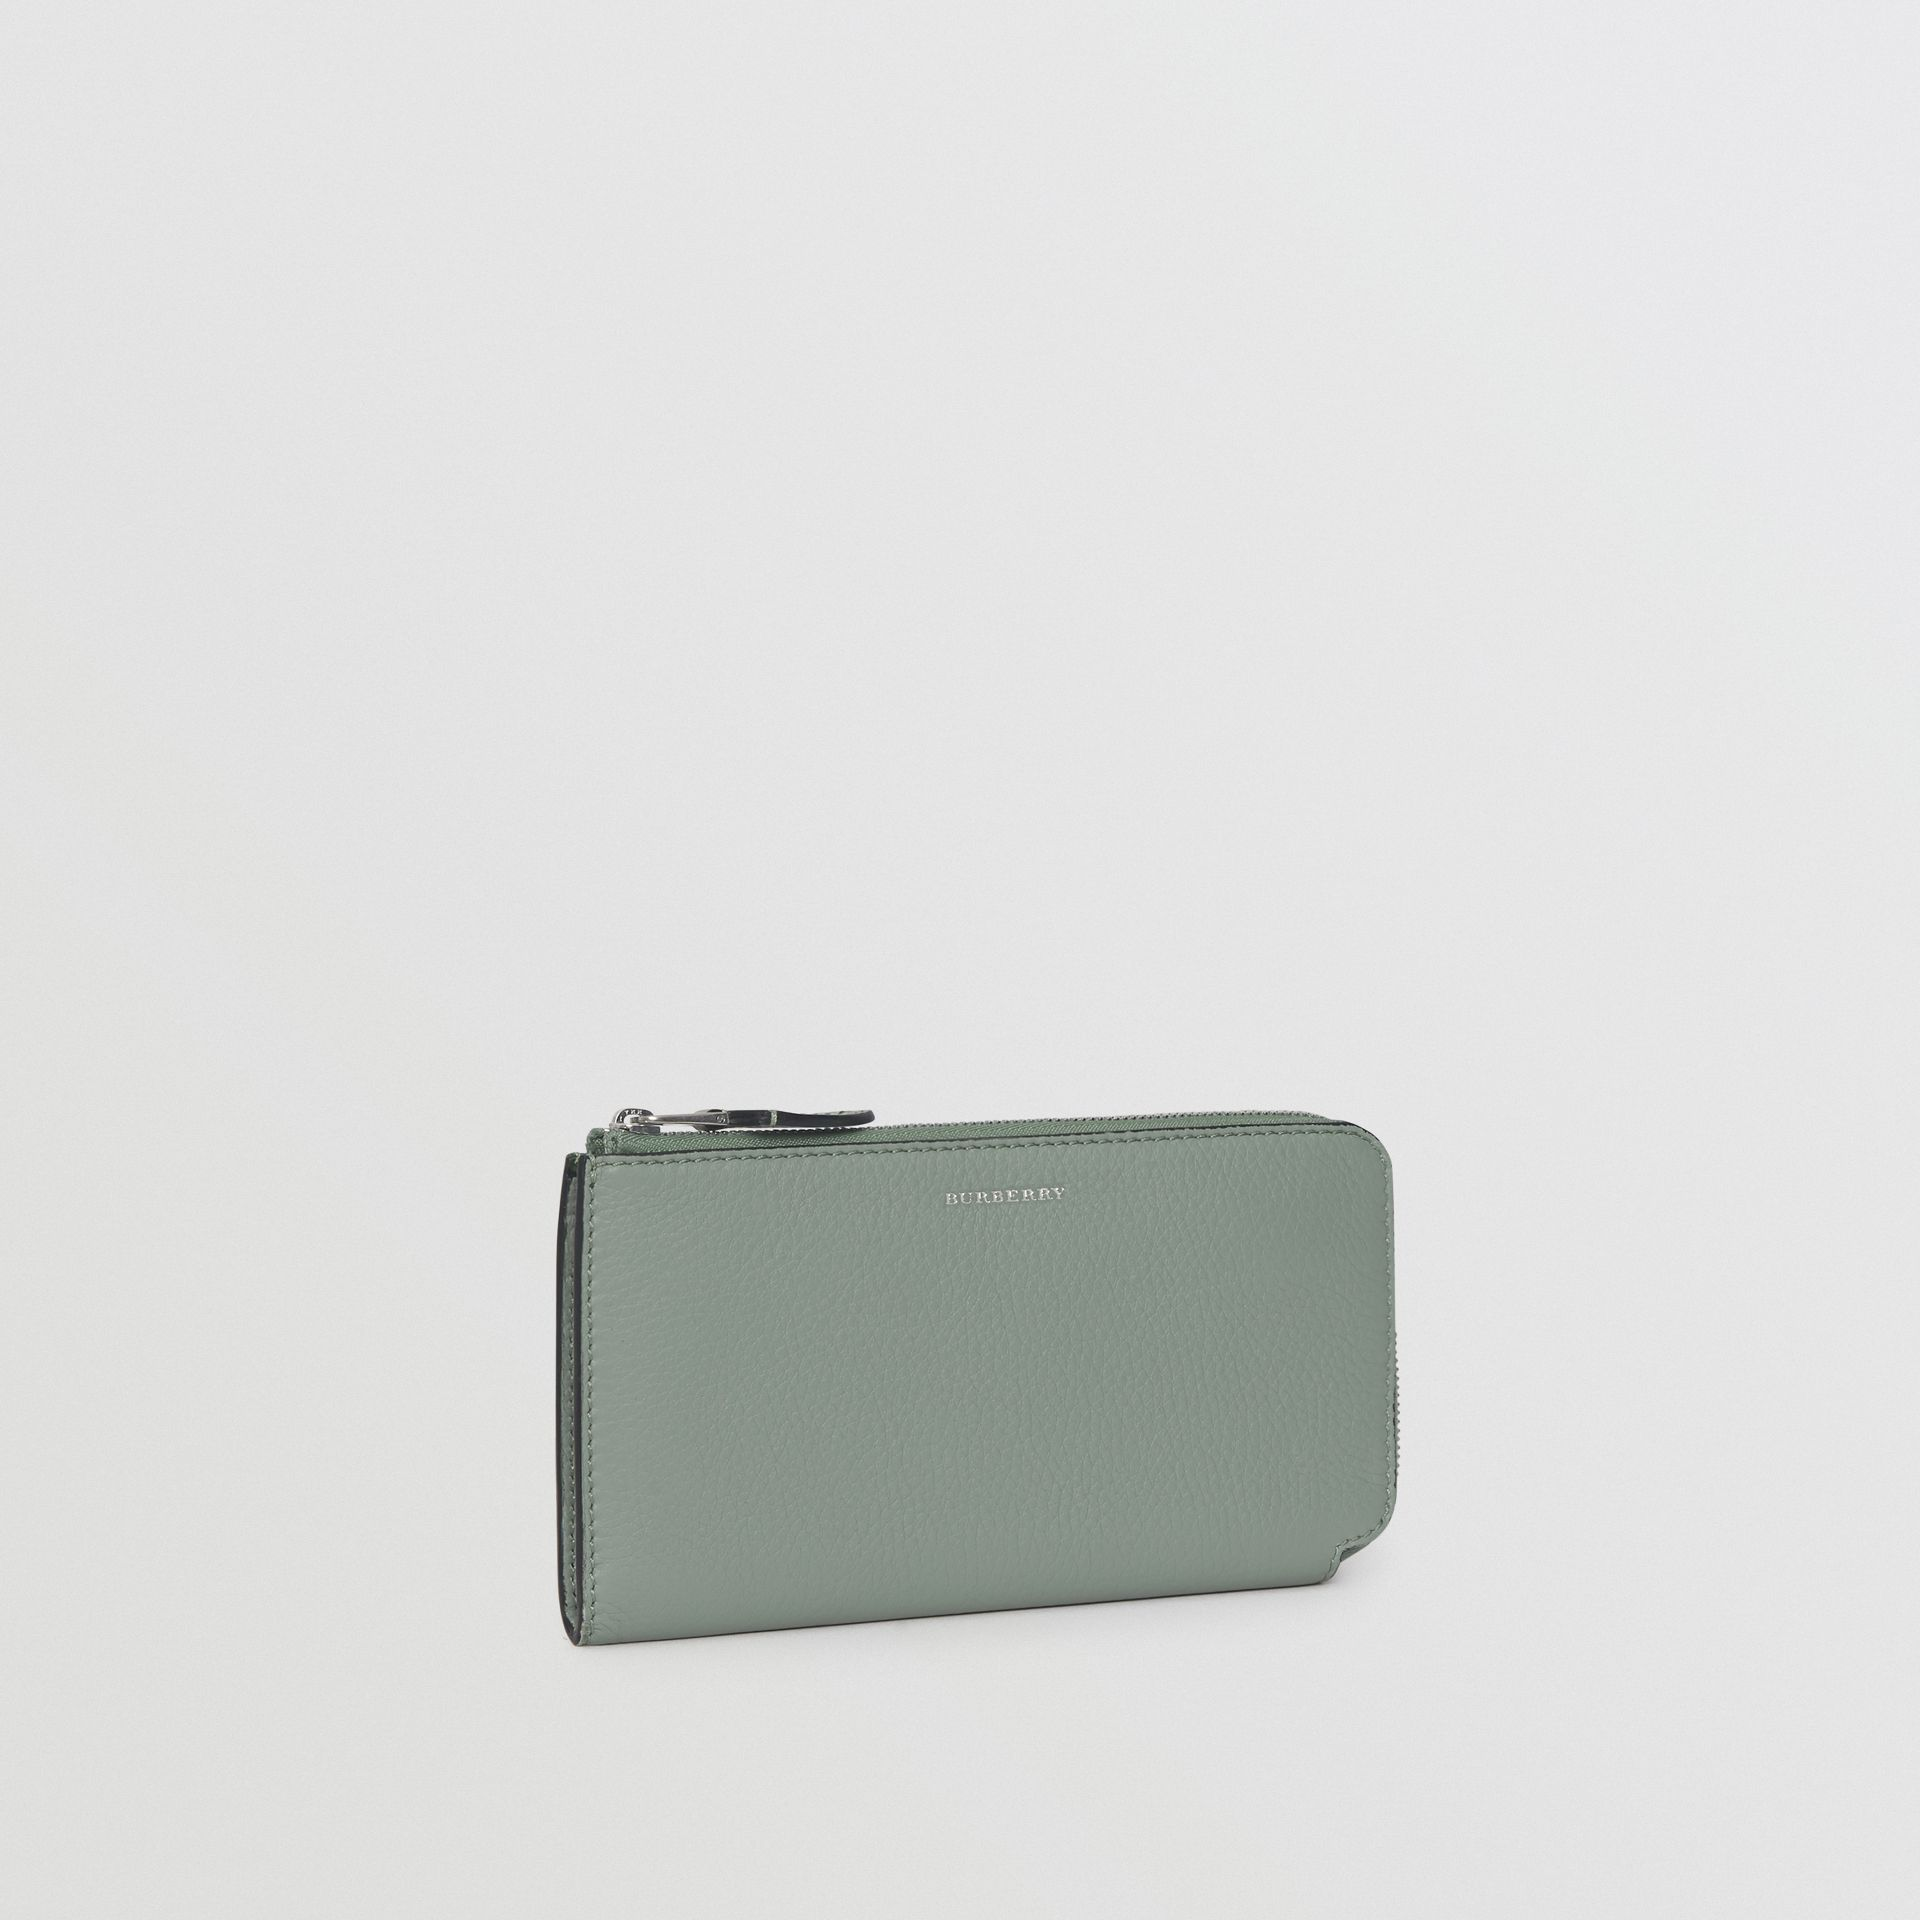 Two-tone Leather Ziparound Wallet and Coin Case in Grey Blue - Women | Burberry - gallery image 5